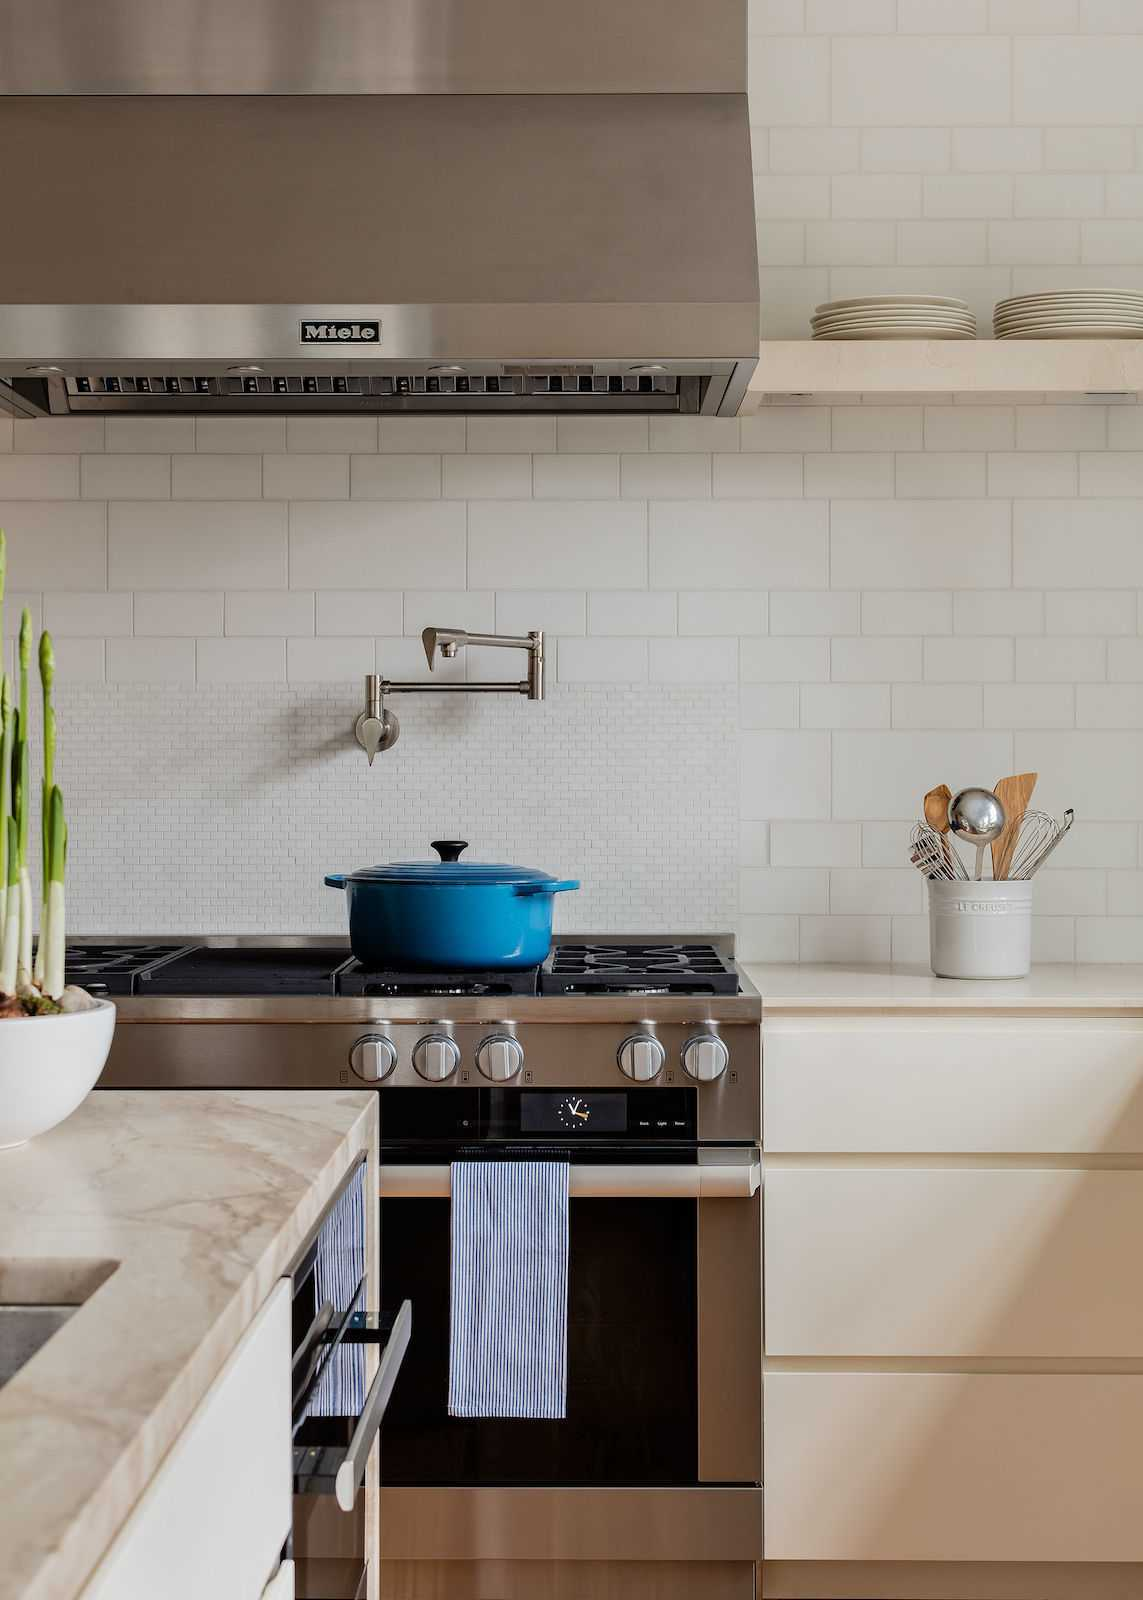 A pot filler above the professional style range and hood is another functional touch for serious cooking.